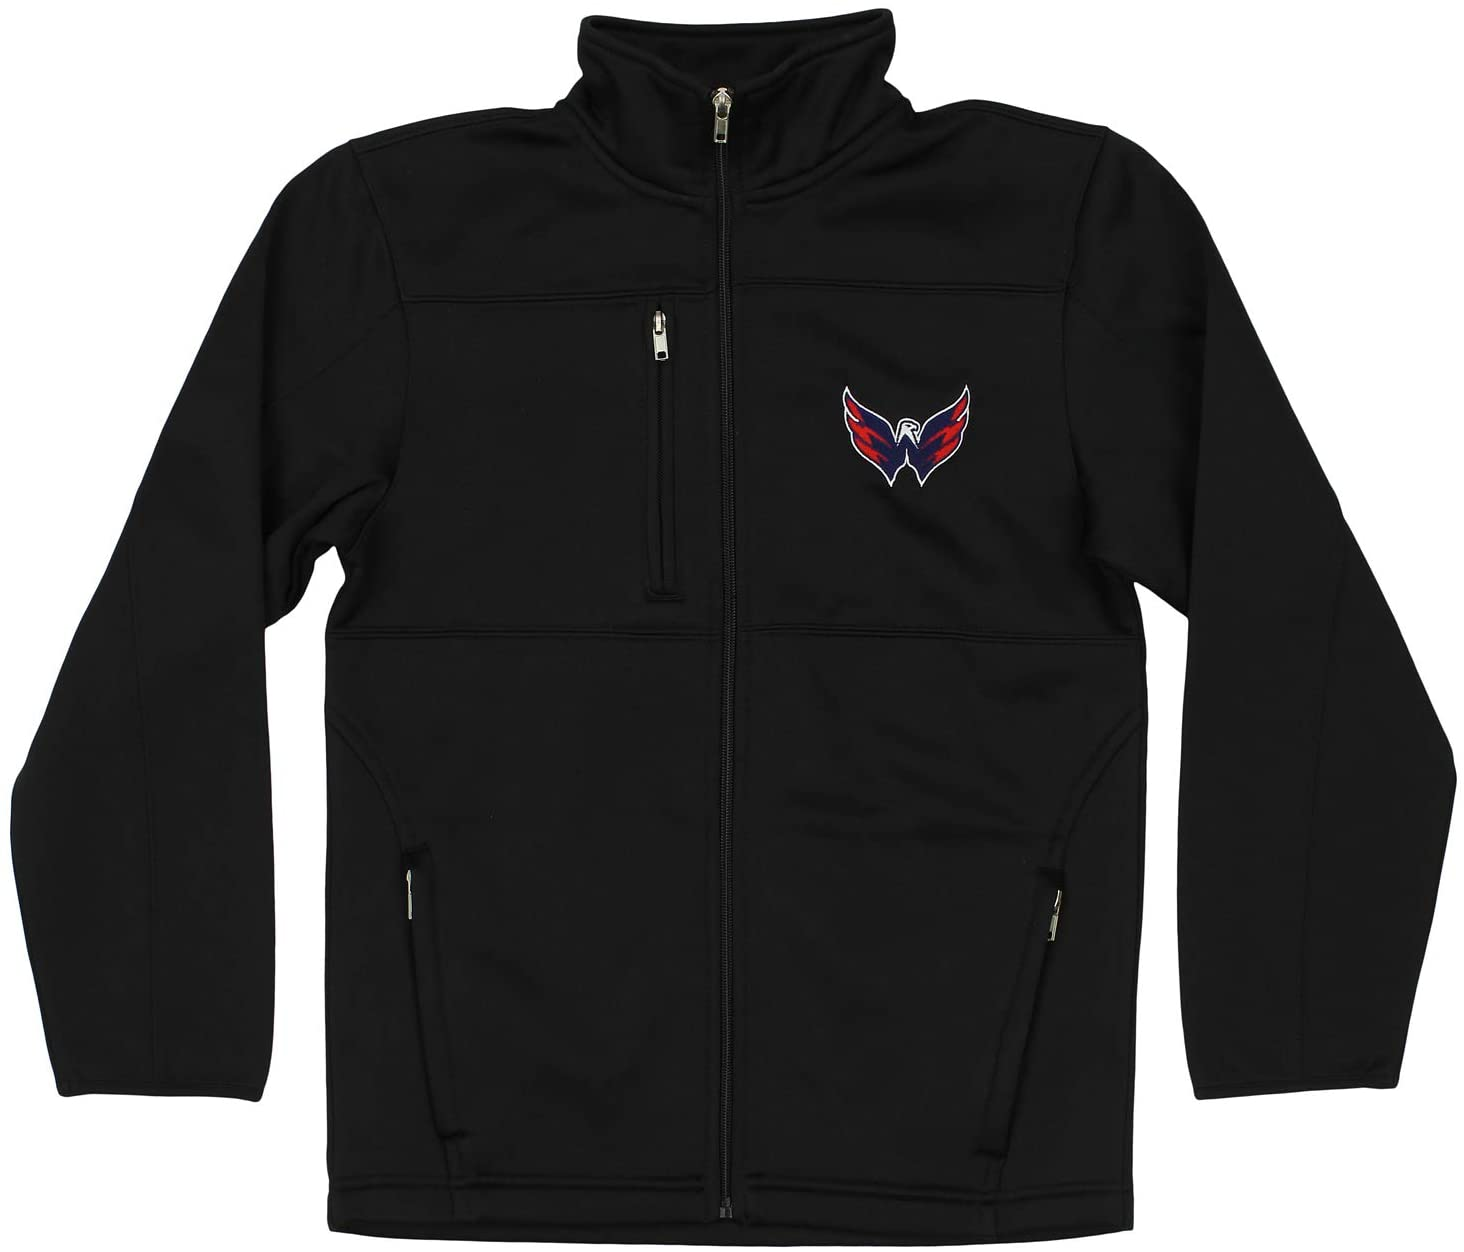 OuterStuff NHL Youth Boys Washington Capitals Bonded Fleece Jacket